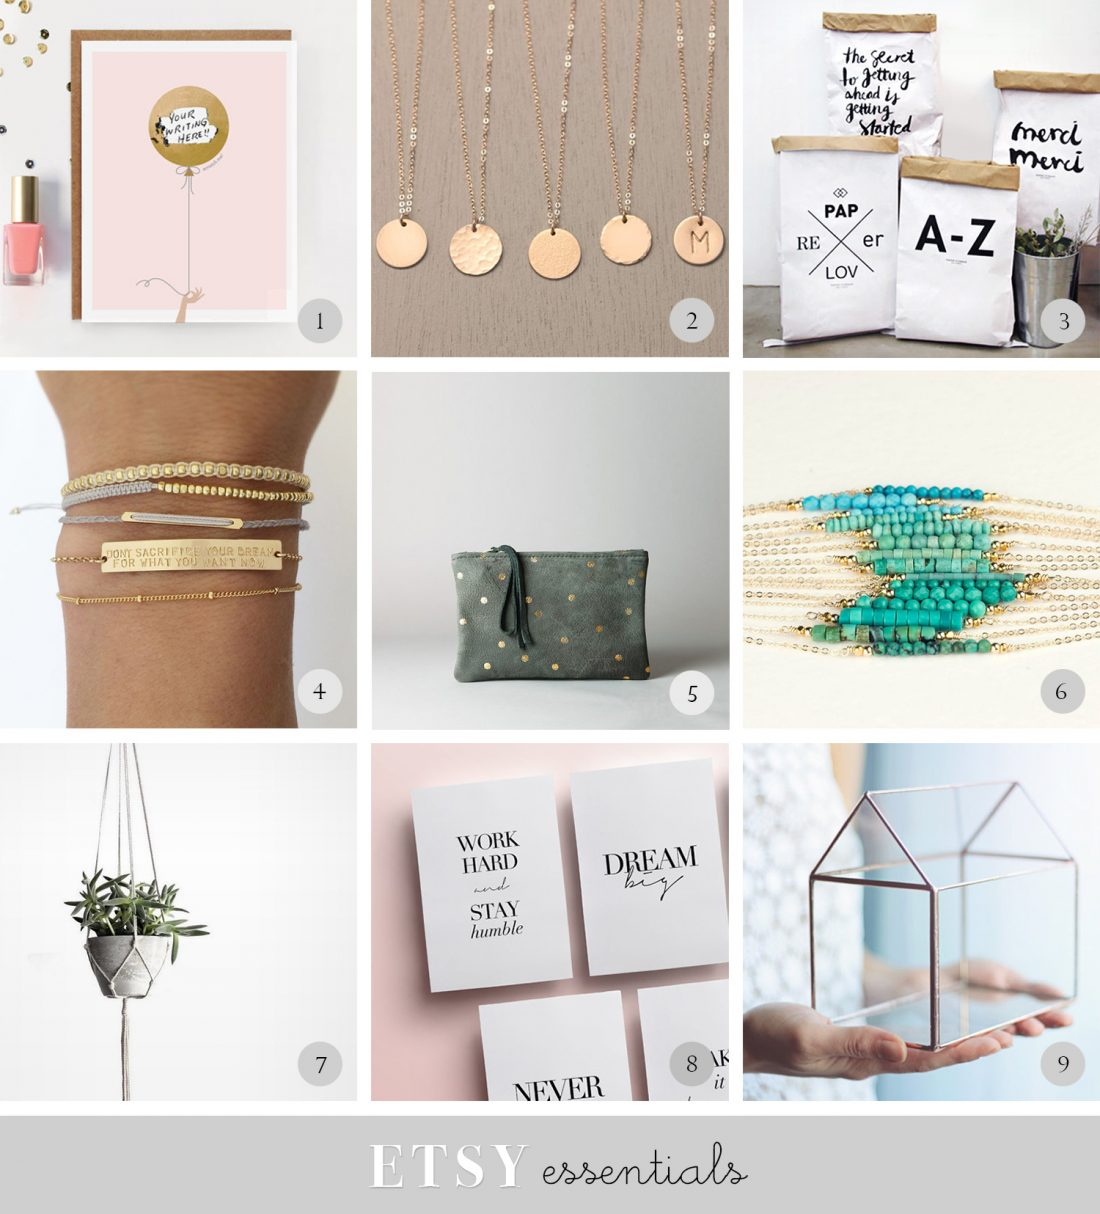 etsy-essentials@2x.jpg